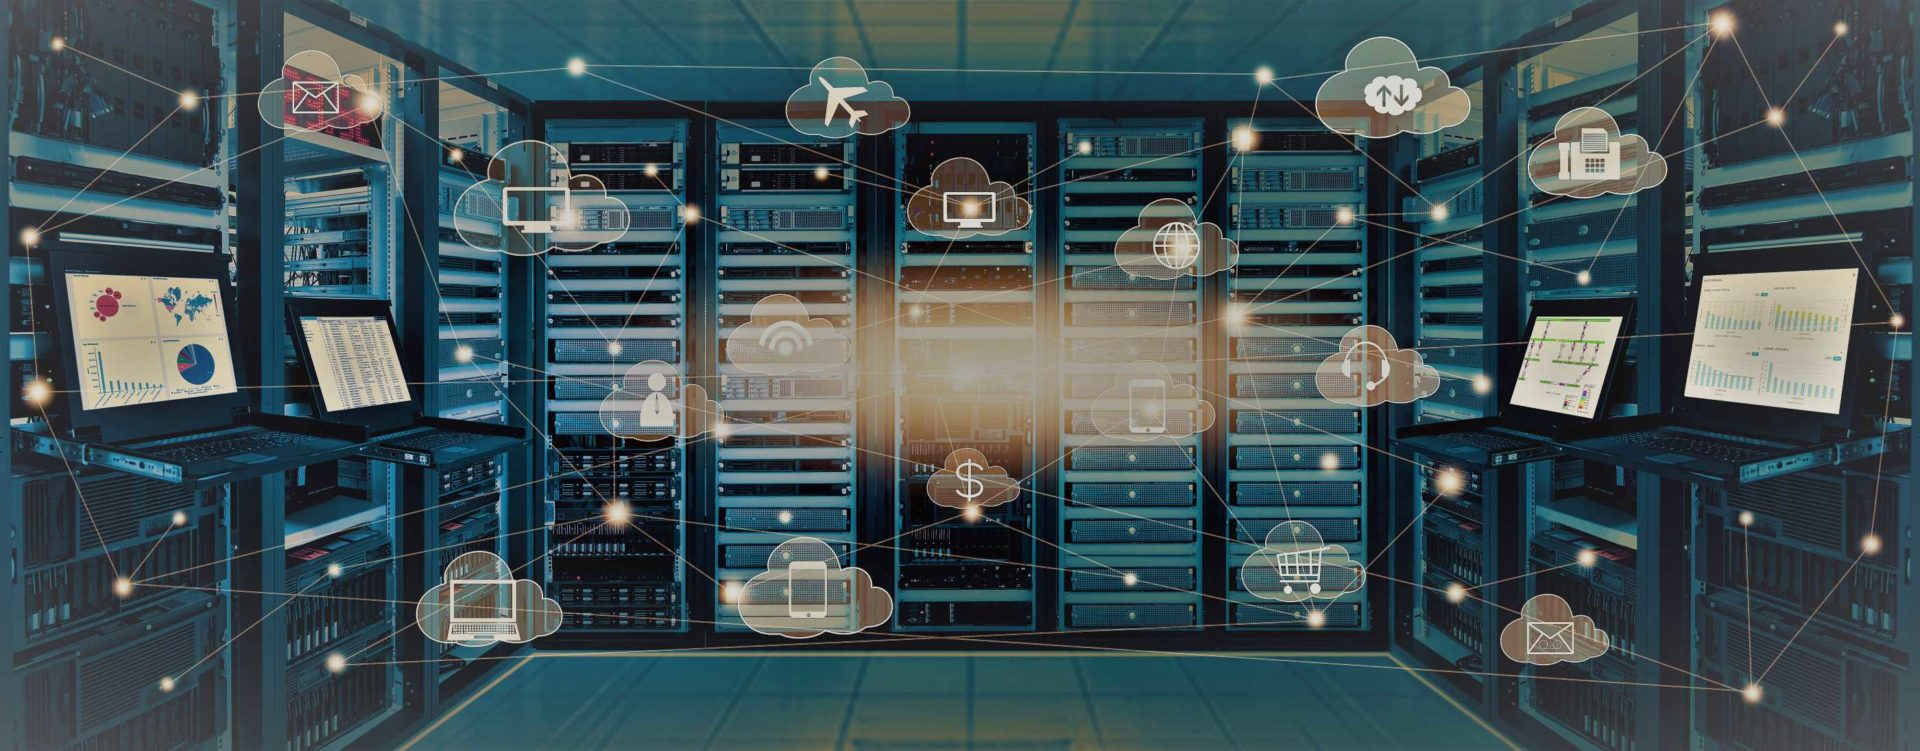 What is a Cloud Server and How Does it Work?